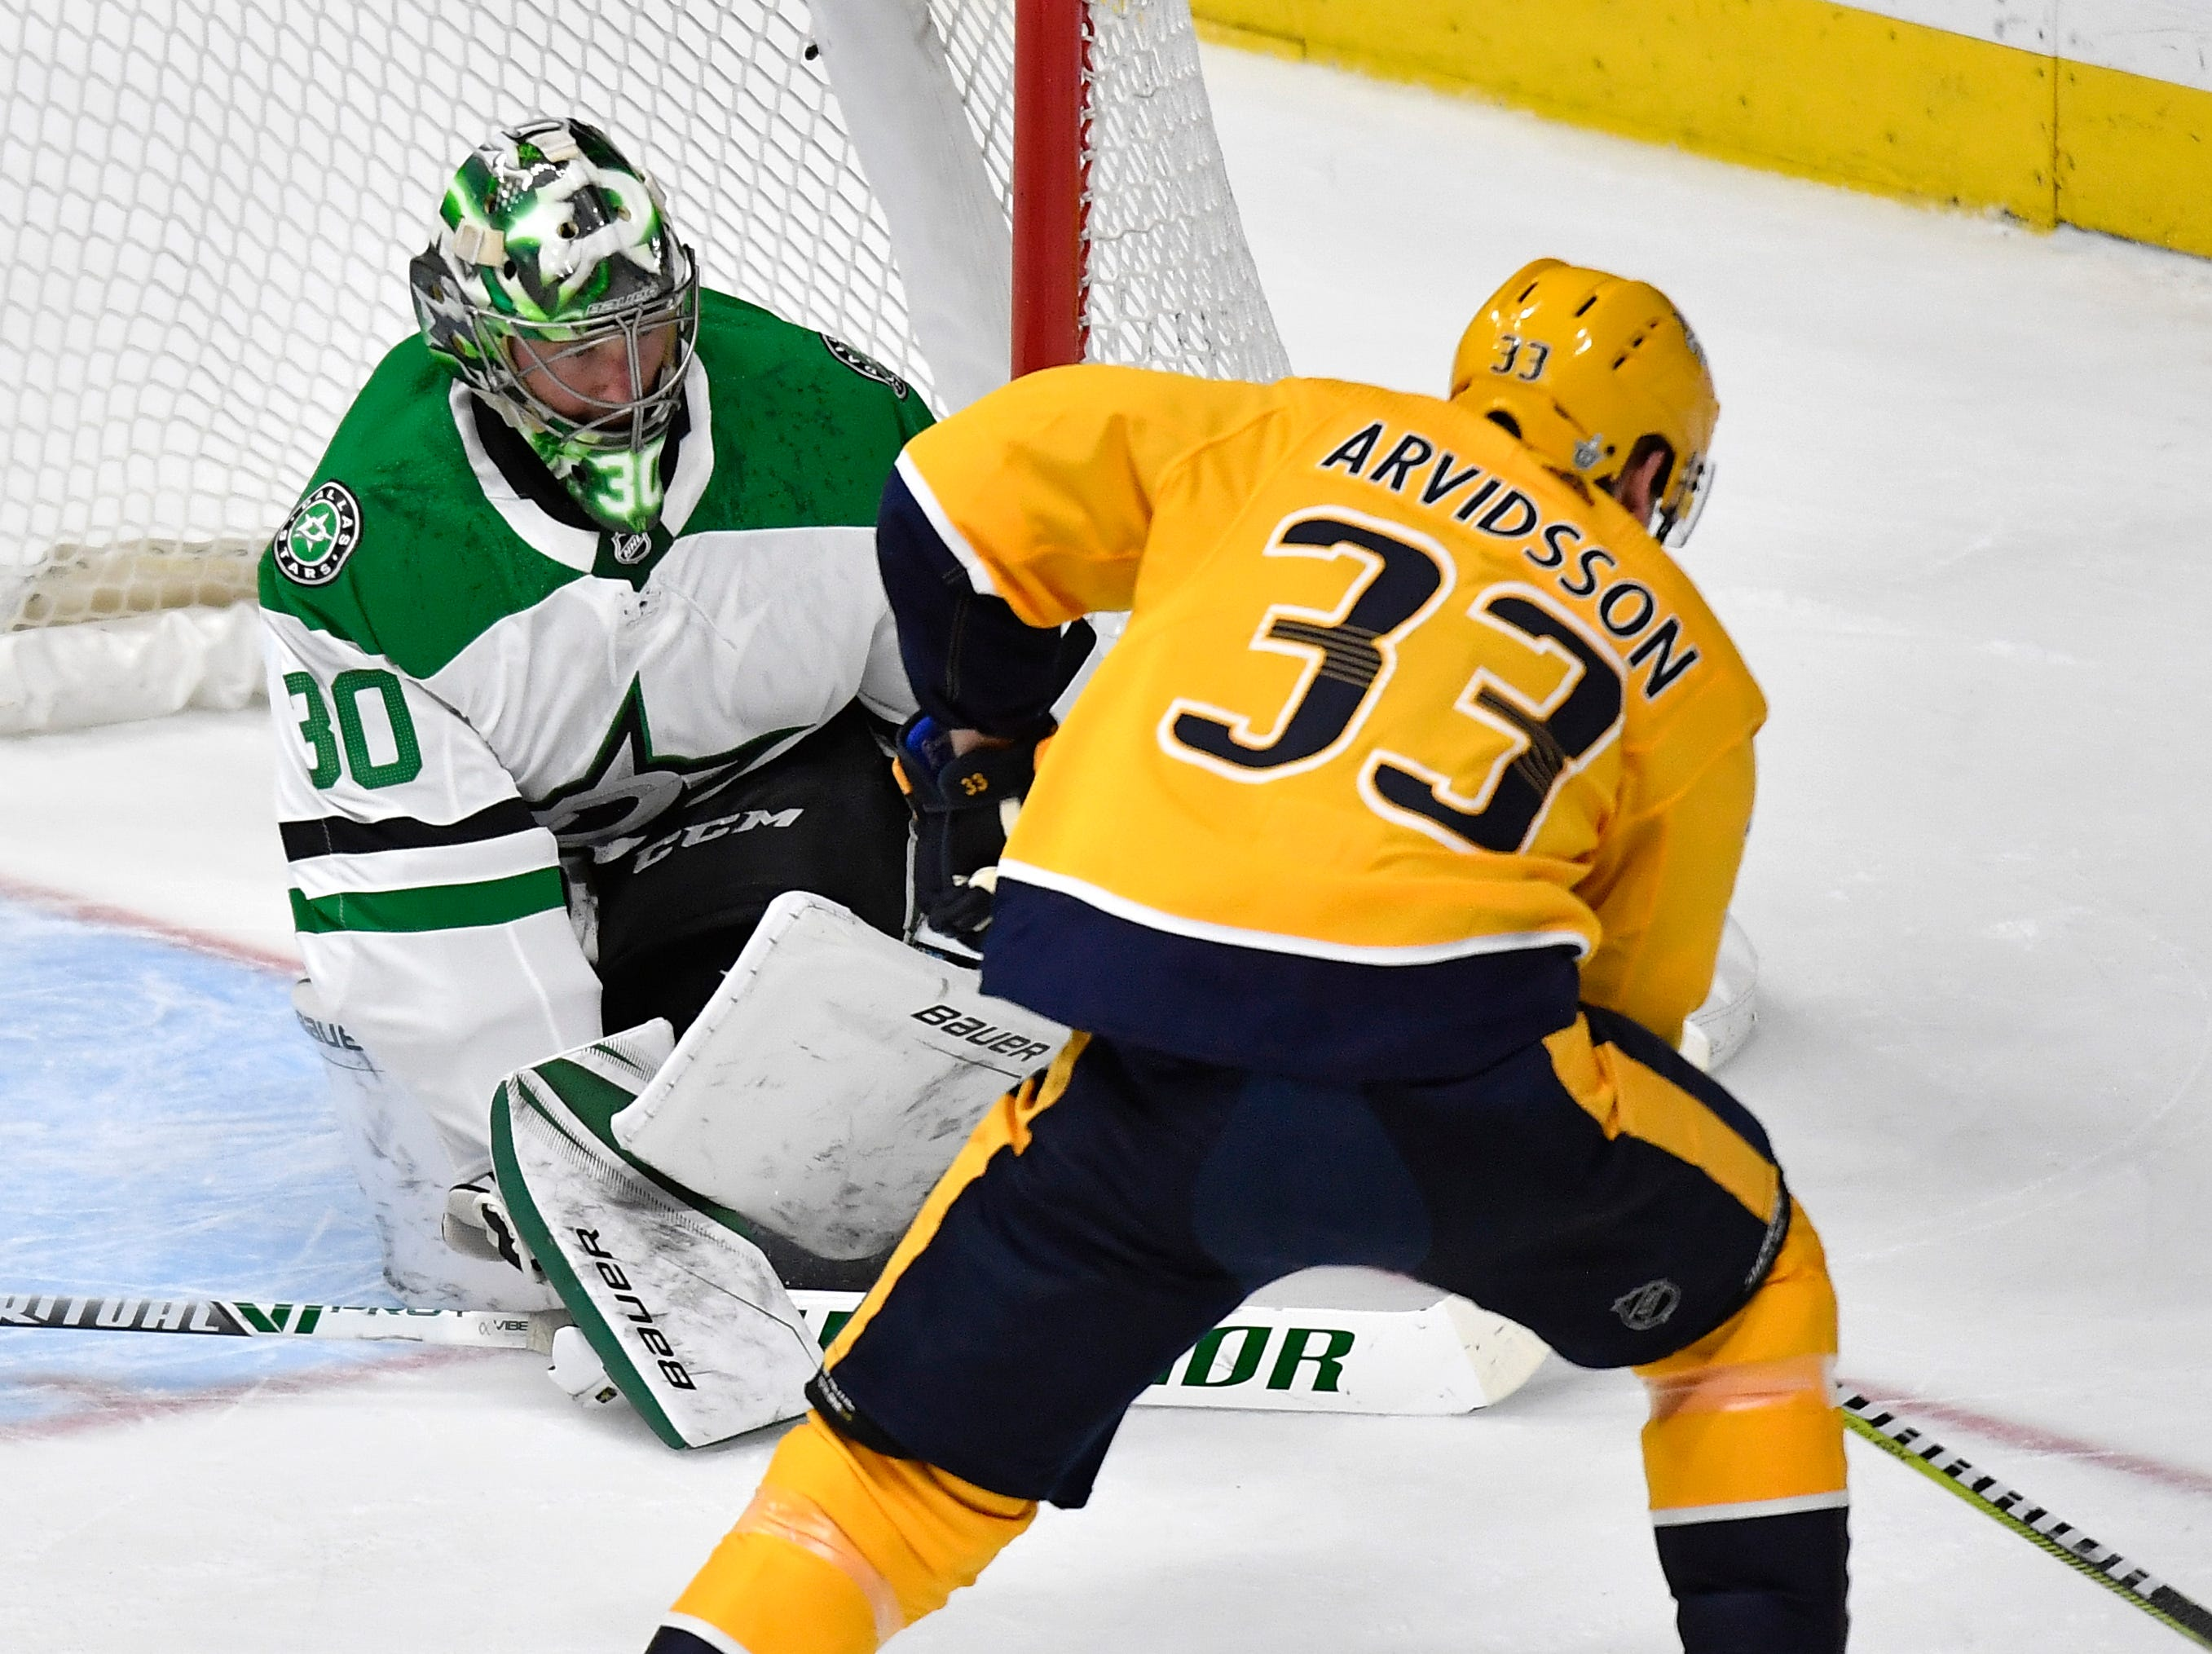 Nashville Predators right wing Viktor Arvidsson (33) moves the puck in front of Dallas Stars goaltender Ben Bishop (30) during the first period of the divisional semifinal game at Bridgestone Arena in Nashville, Tenn., Wednesday, April 10, 2019.